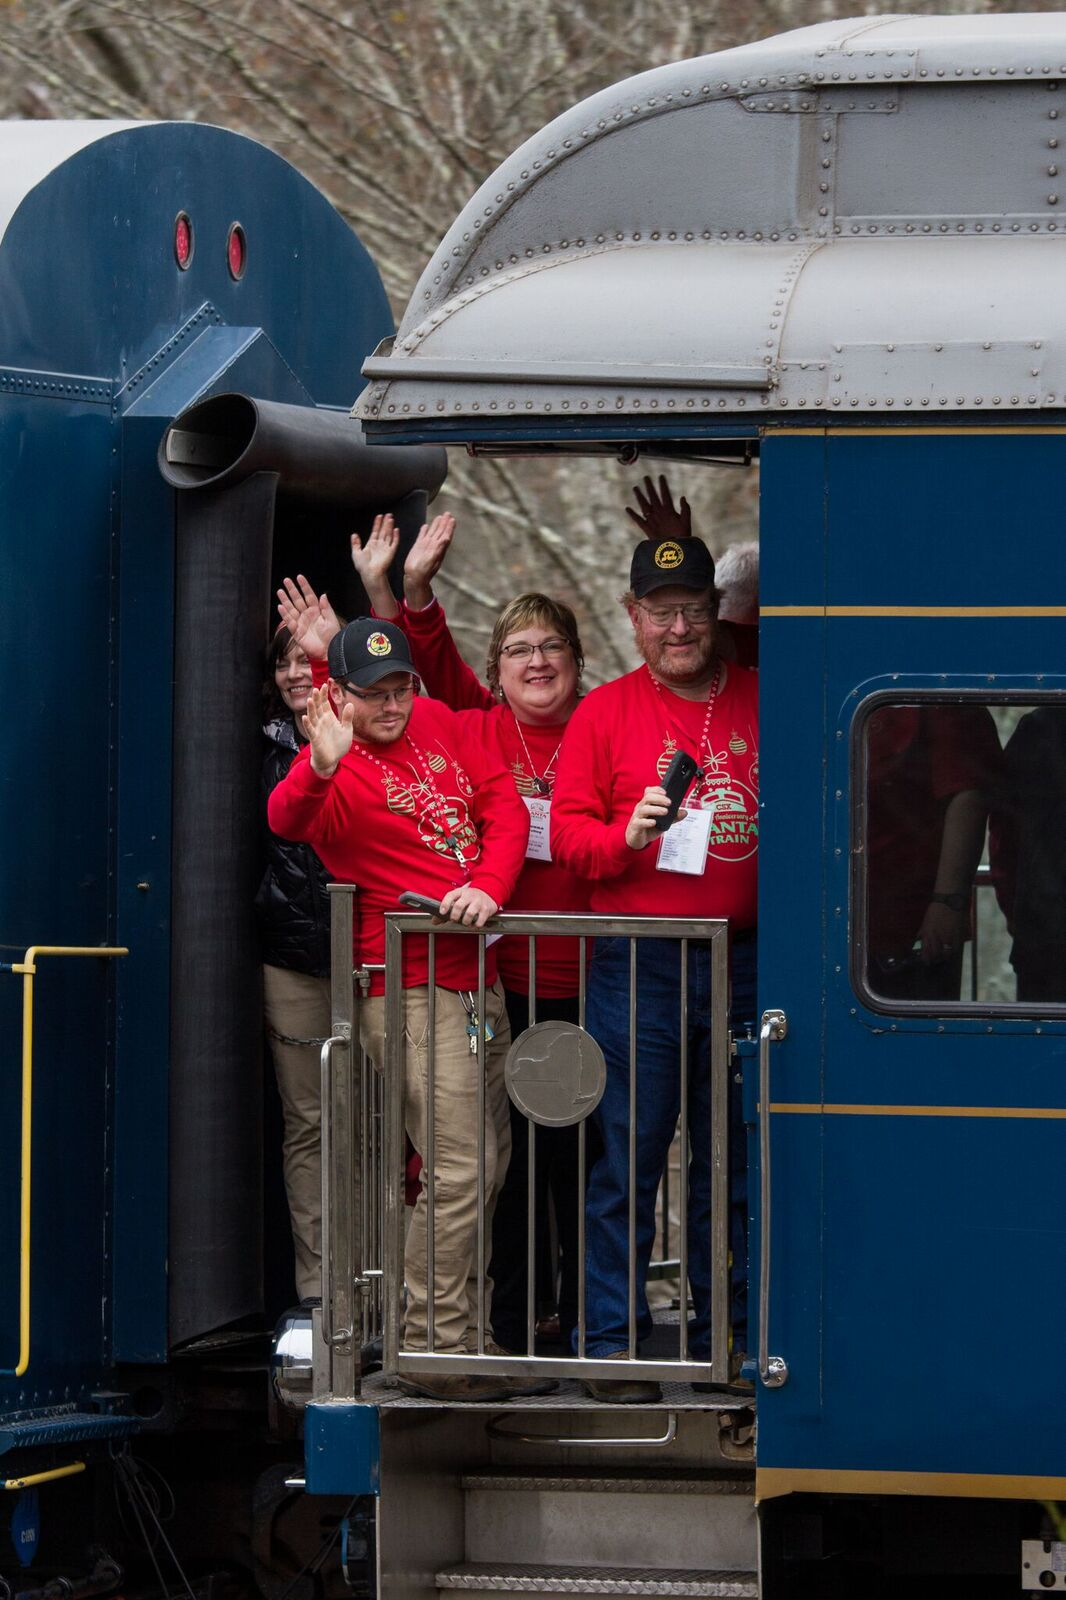 Museum Director Charlie Poling and his wife, plus museum volunteer Wade White ride the Santa Train. Peyton Gupton photo.